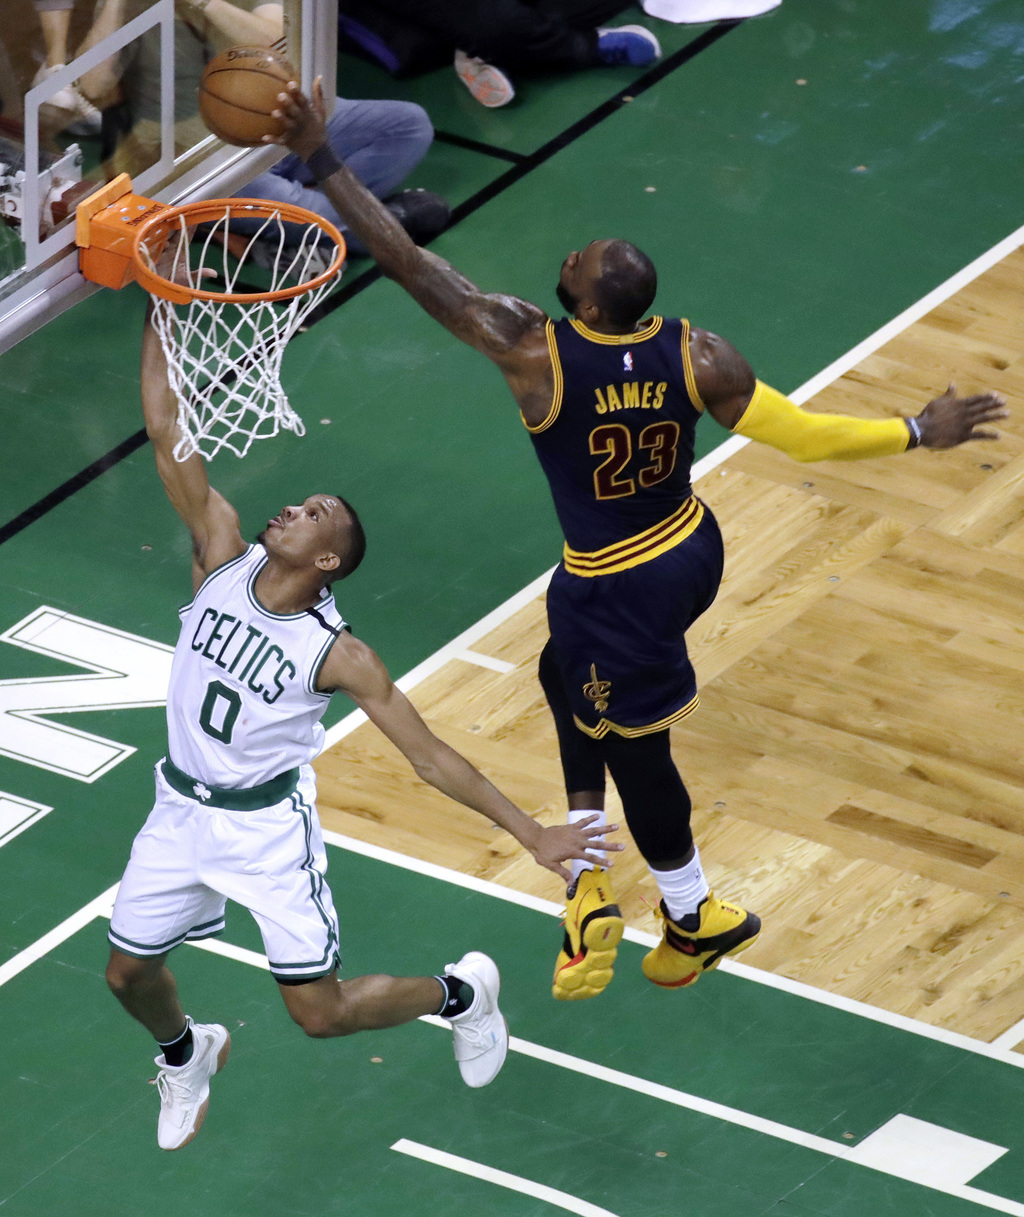 Cleveland Cavaliers forward LeBron James, right, blocks a shot by Boston Celtics guard Avery Bradley during the first half of Game 2 of...